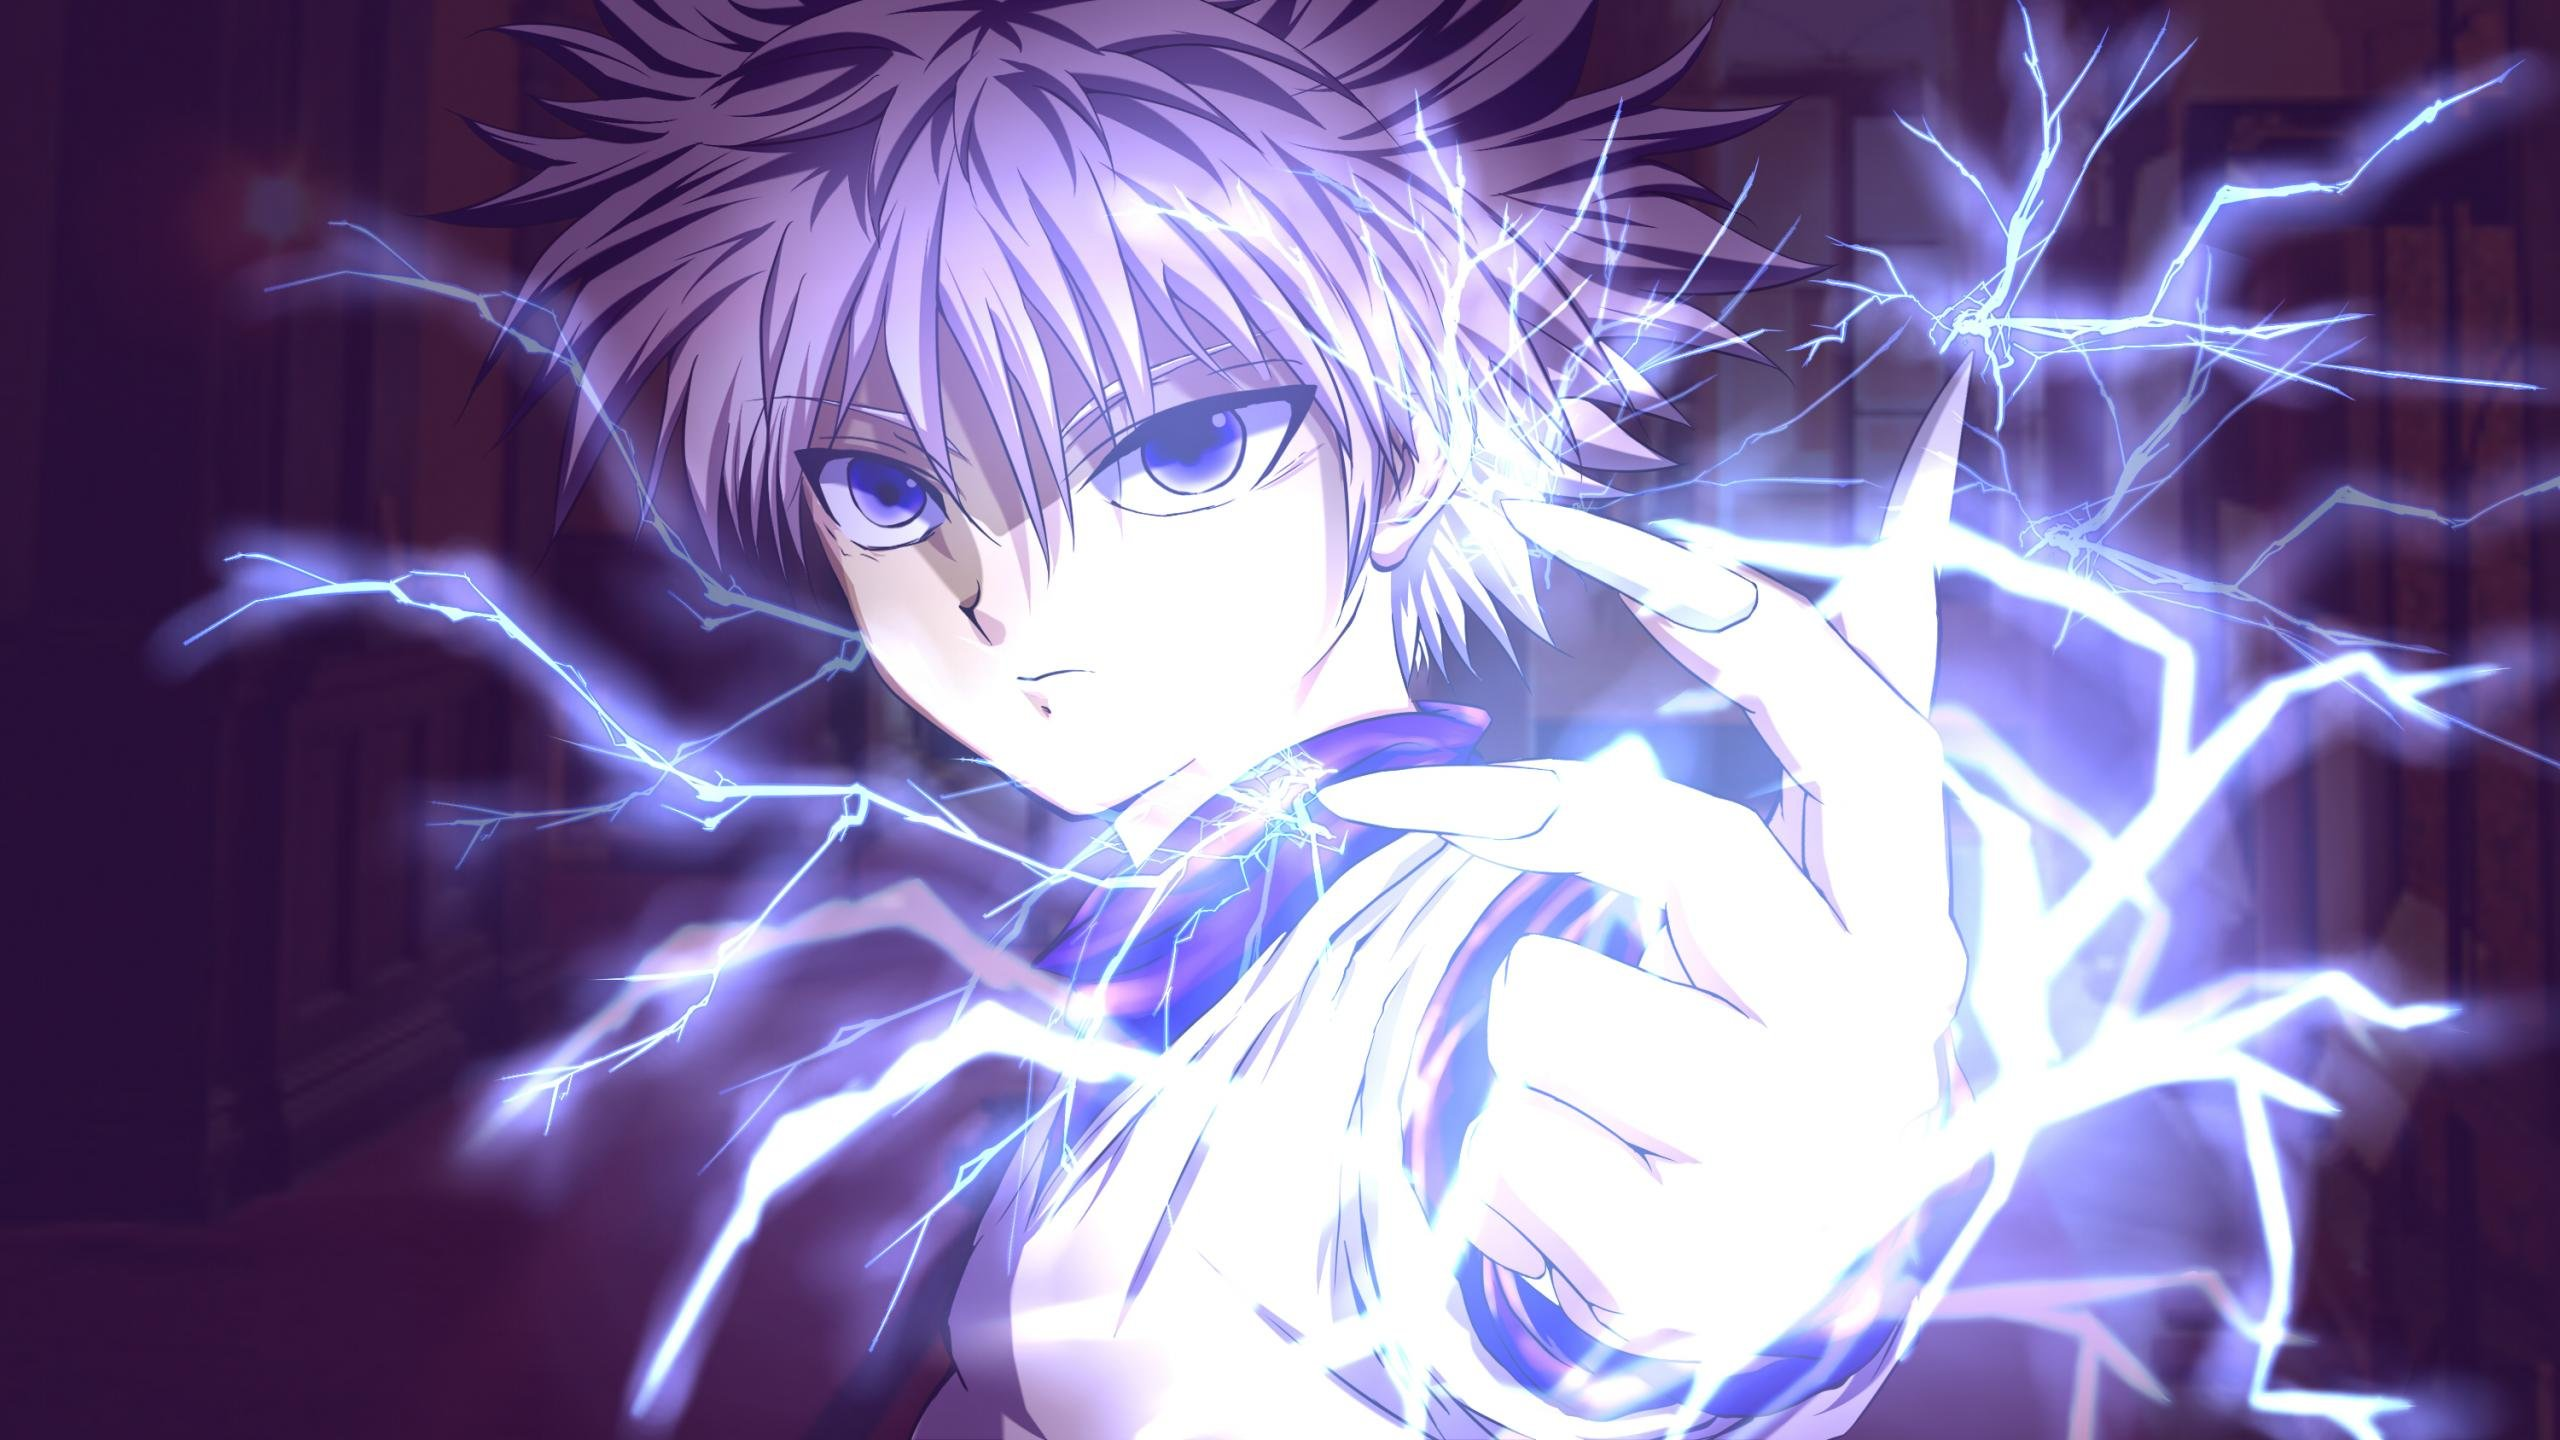 Awesome Killua Zoldyck free background ID:10845 for hd 2560x1440 desktop